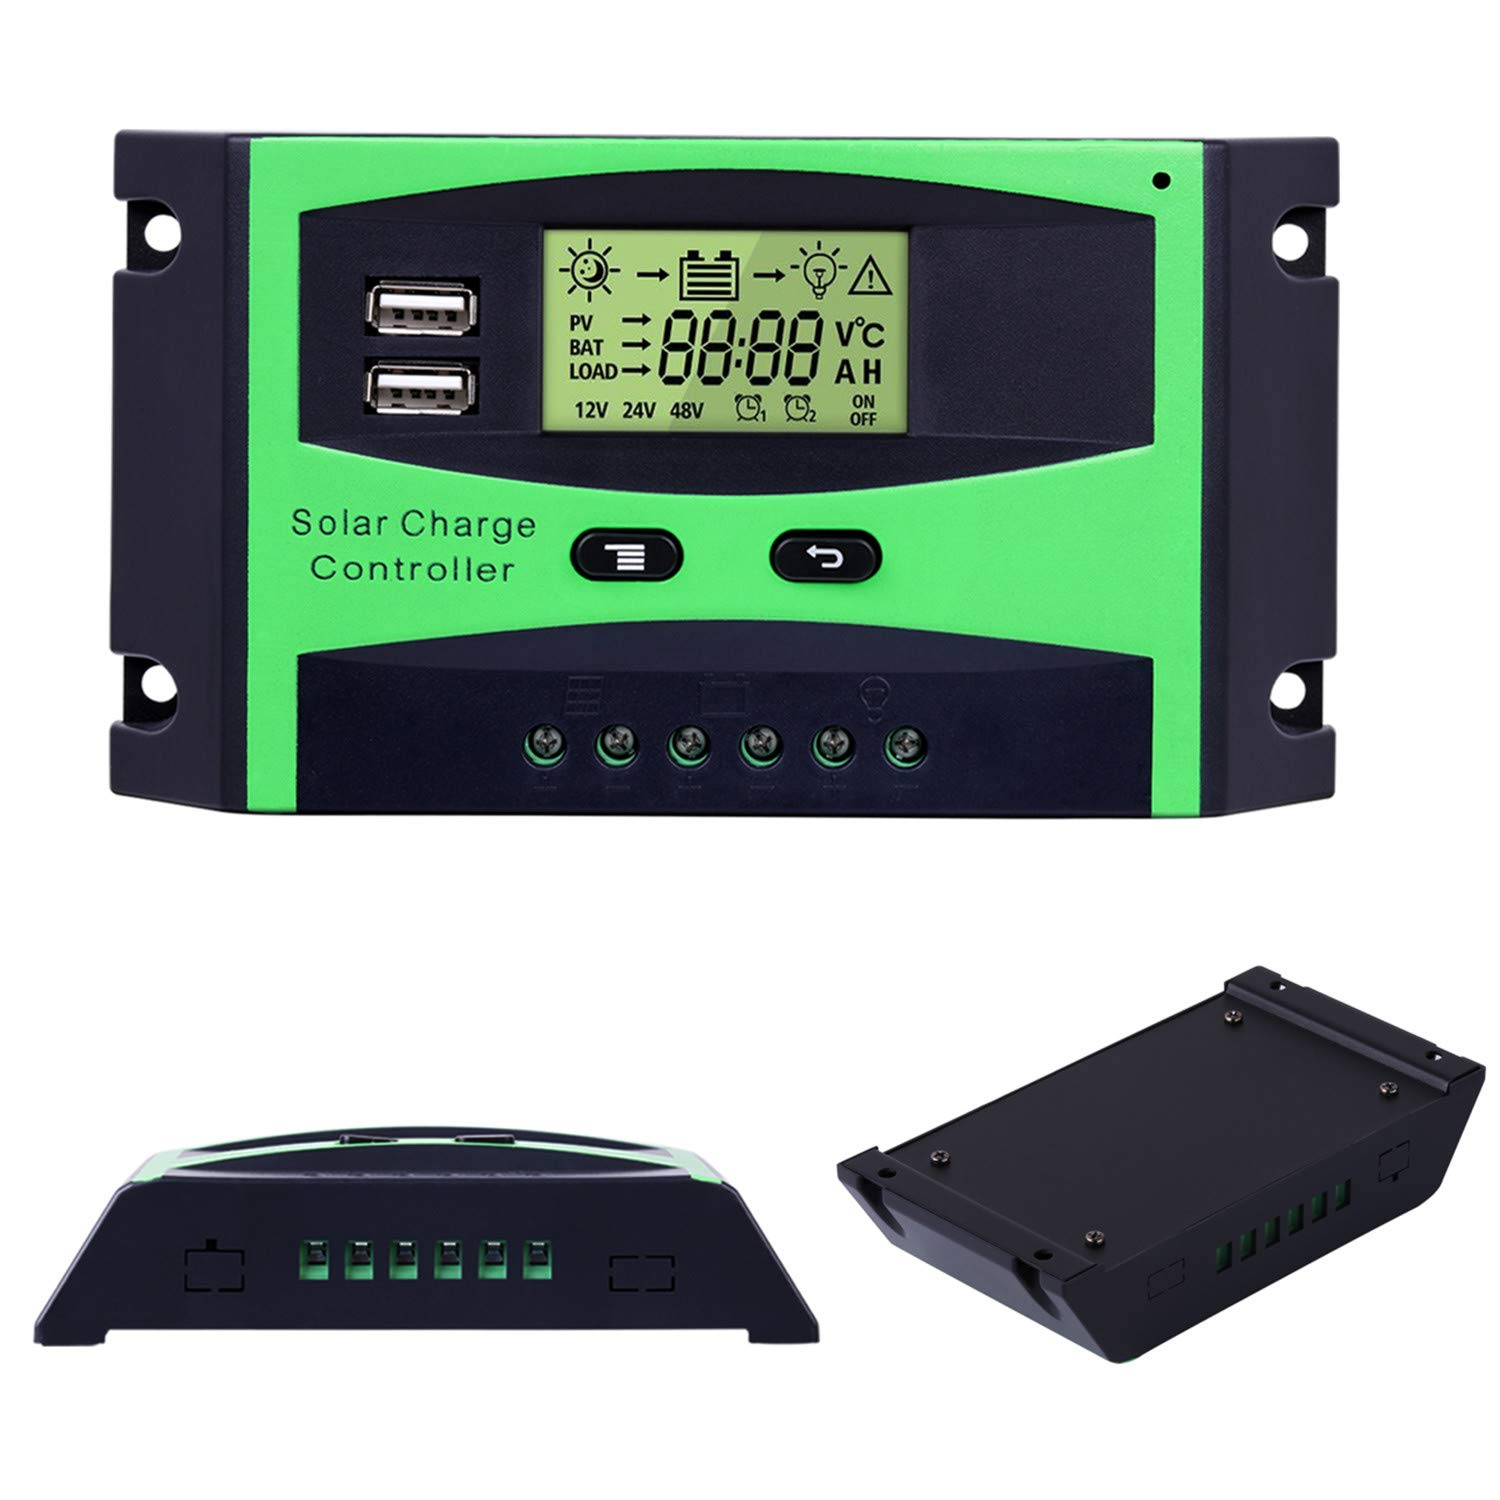 [Upgrated] 20A Solar Charge Controller Solar Panel Battery Controller Intelligent Regulator with Dual USB Port PWM LCD Display 12V/24V